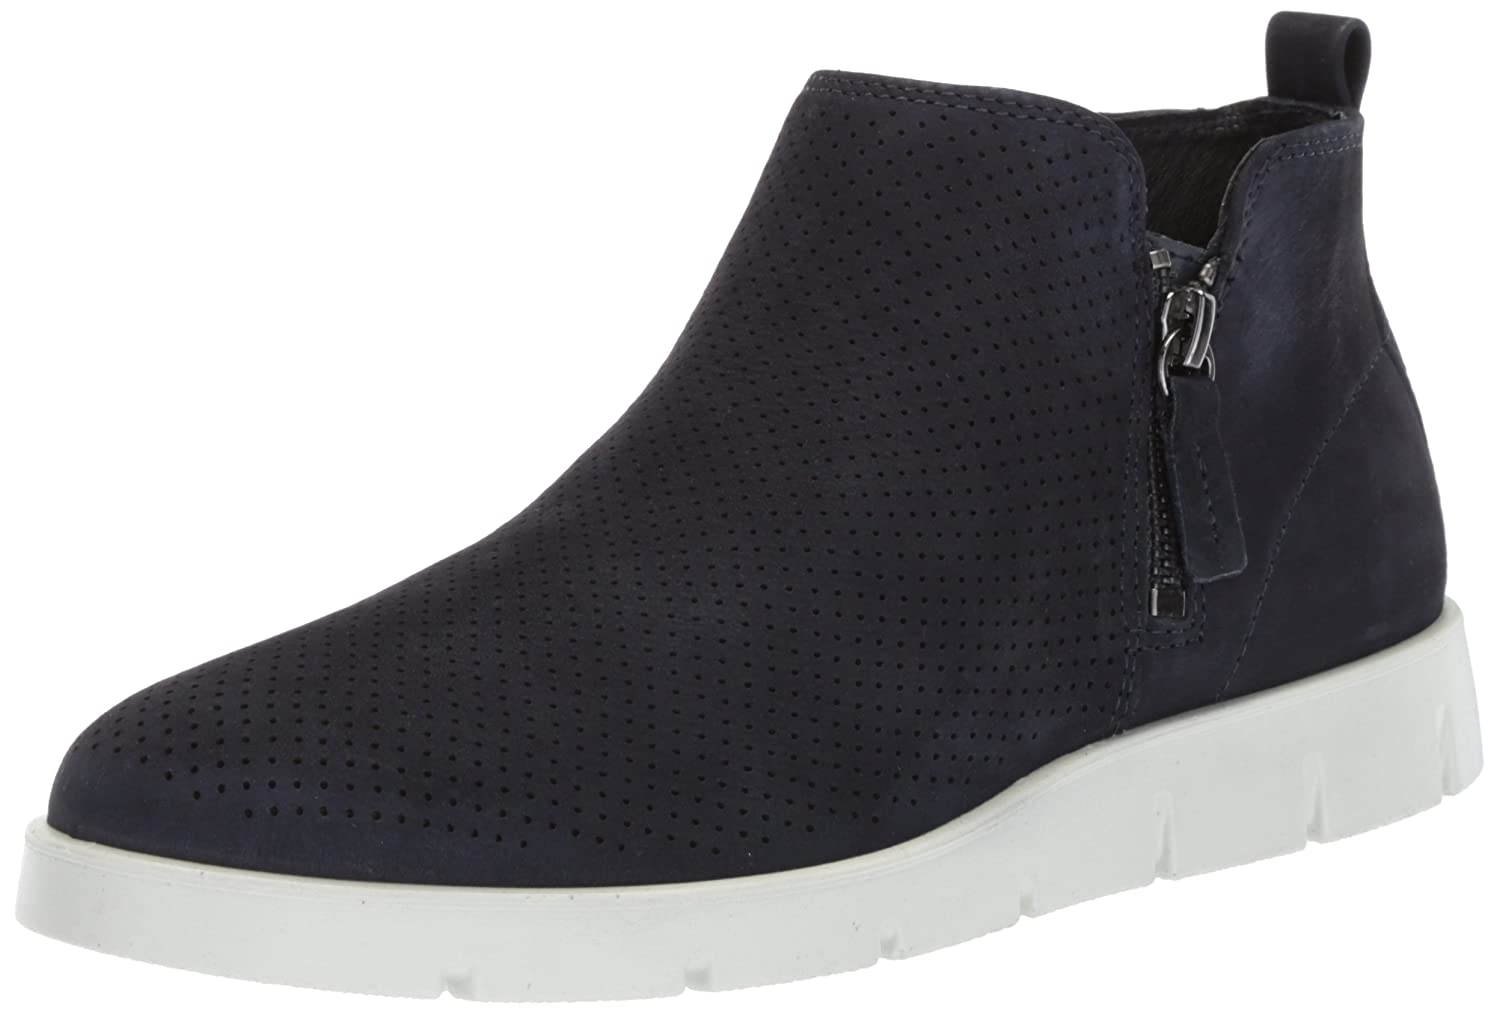 Night Sky ECCO shoes Womens Bella Boot Ankle Boot